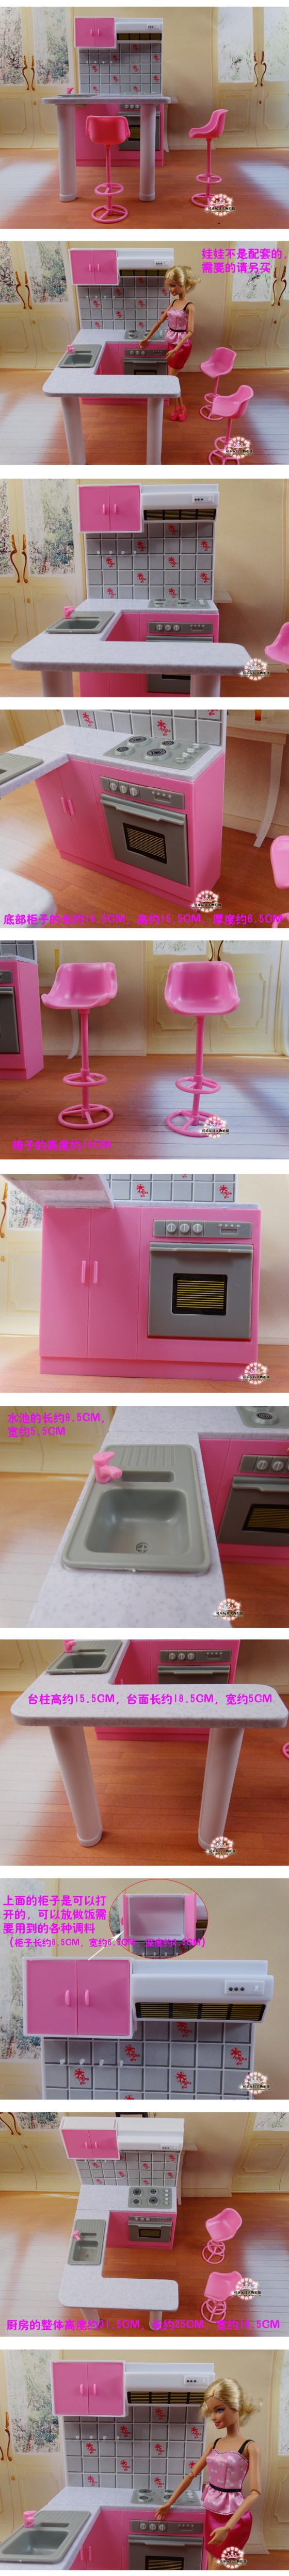 Free Transport Lady birthday present plastic Play Set Furnishings Kitchen equipment for barbie doll,women play home,women items